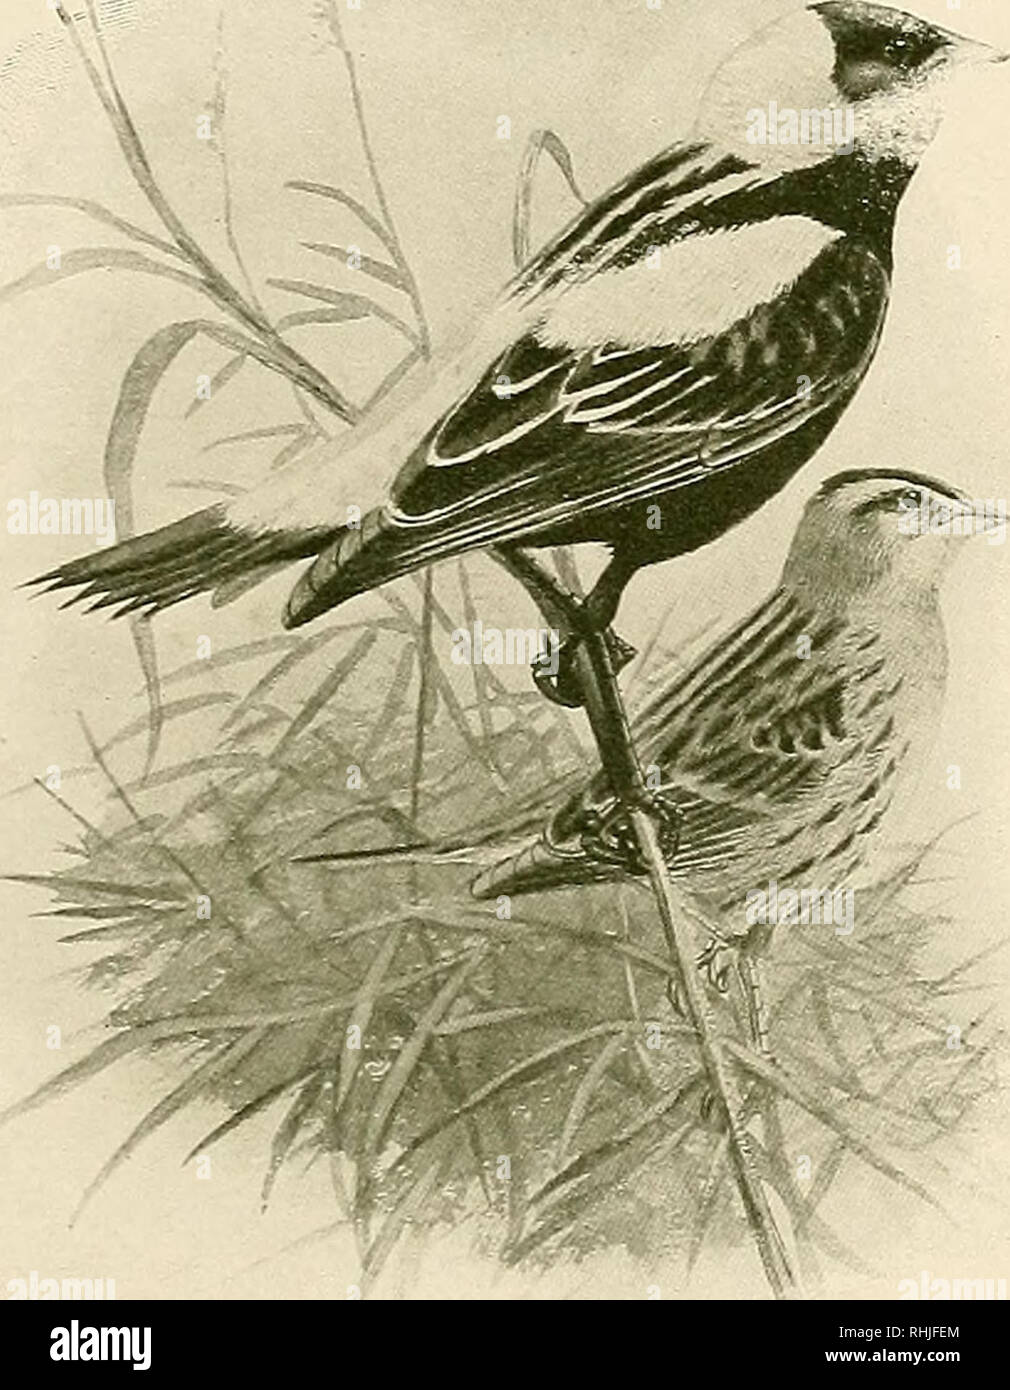 """. The birds of California : a complete, scientific and popular account of the 580 species and subspecies of birds found in the state. Birds; Birds. The Bobolink  and ladies have thronged our streets, and ducal parties have put up at our """"best hotels."""" We have dined with Maharajahs, and danced with Spanish grandees. We have listened to high-brows from Boston—have even gone to hear 'em—twice. The Russian ballet regards us as a private possession, and French artistes, who have never seen Dakota, visit us every year. Captains of industry from Chicago have reclaimed our goat- pastures un - Stock Image"""